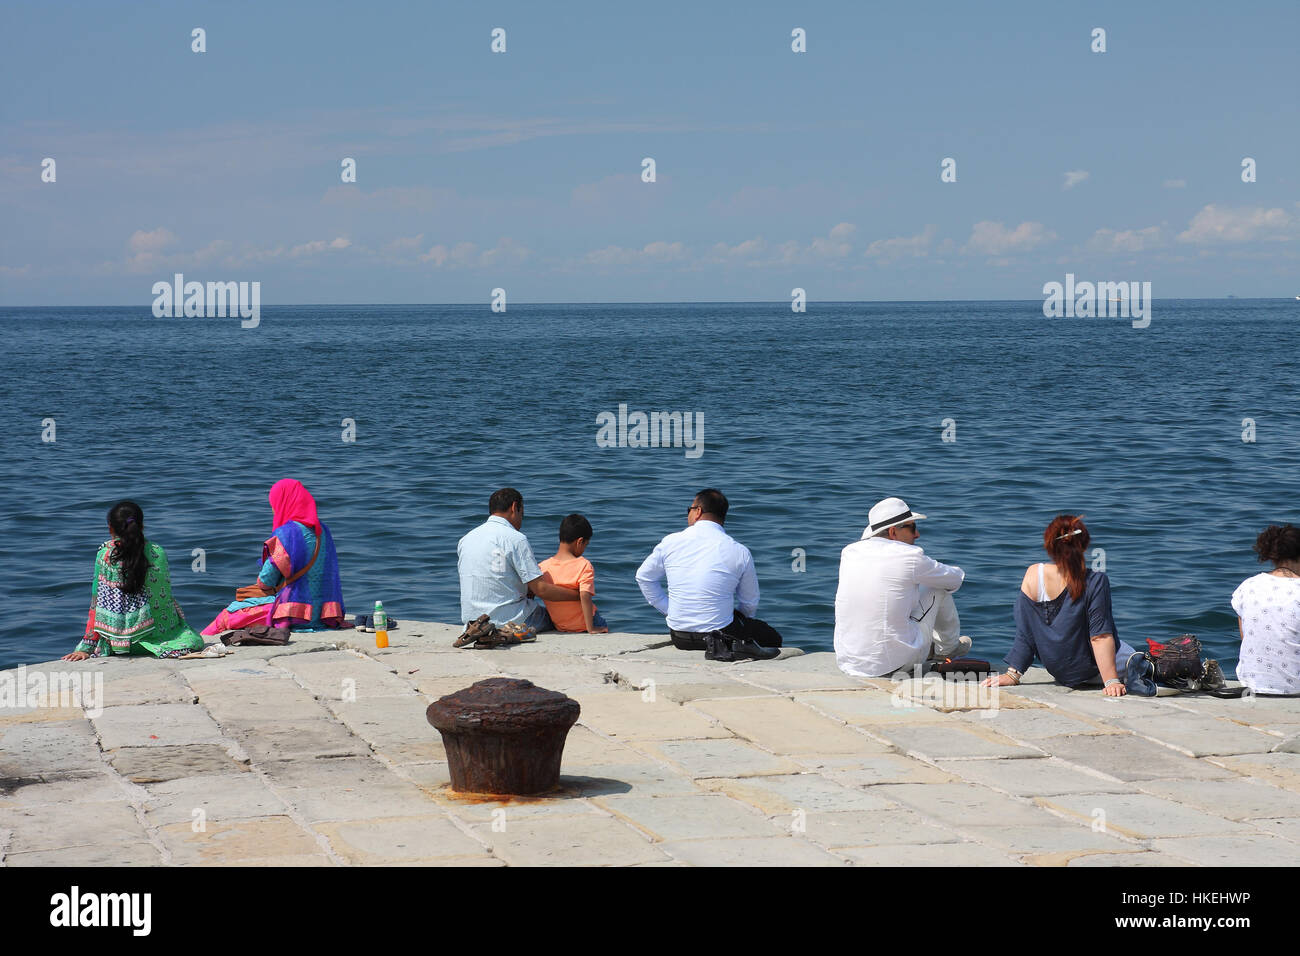 TRIESTE, ITALY - AUGUST 18, 2015: Group of turists  seats on Molo Audace on August 18, 2015 in Trieste on Italy. Trieste is a popular tourist town in  Stock Photo